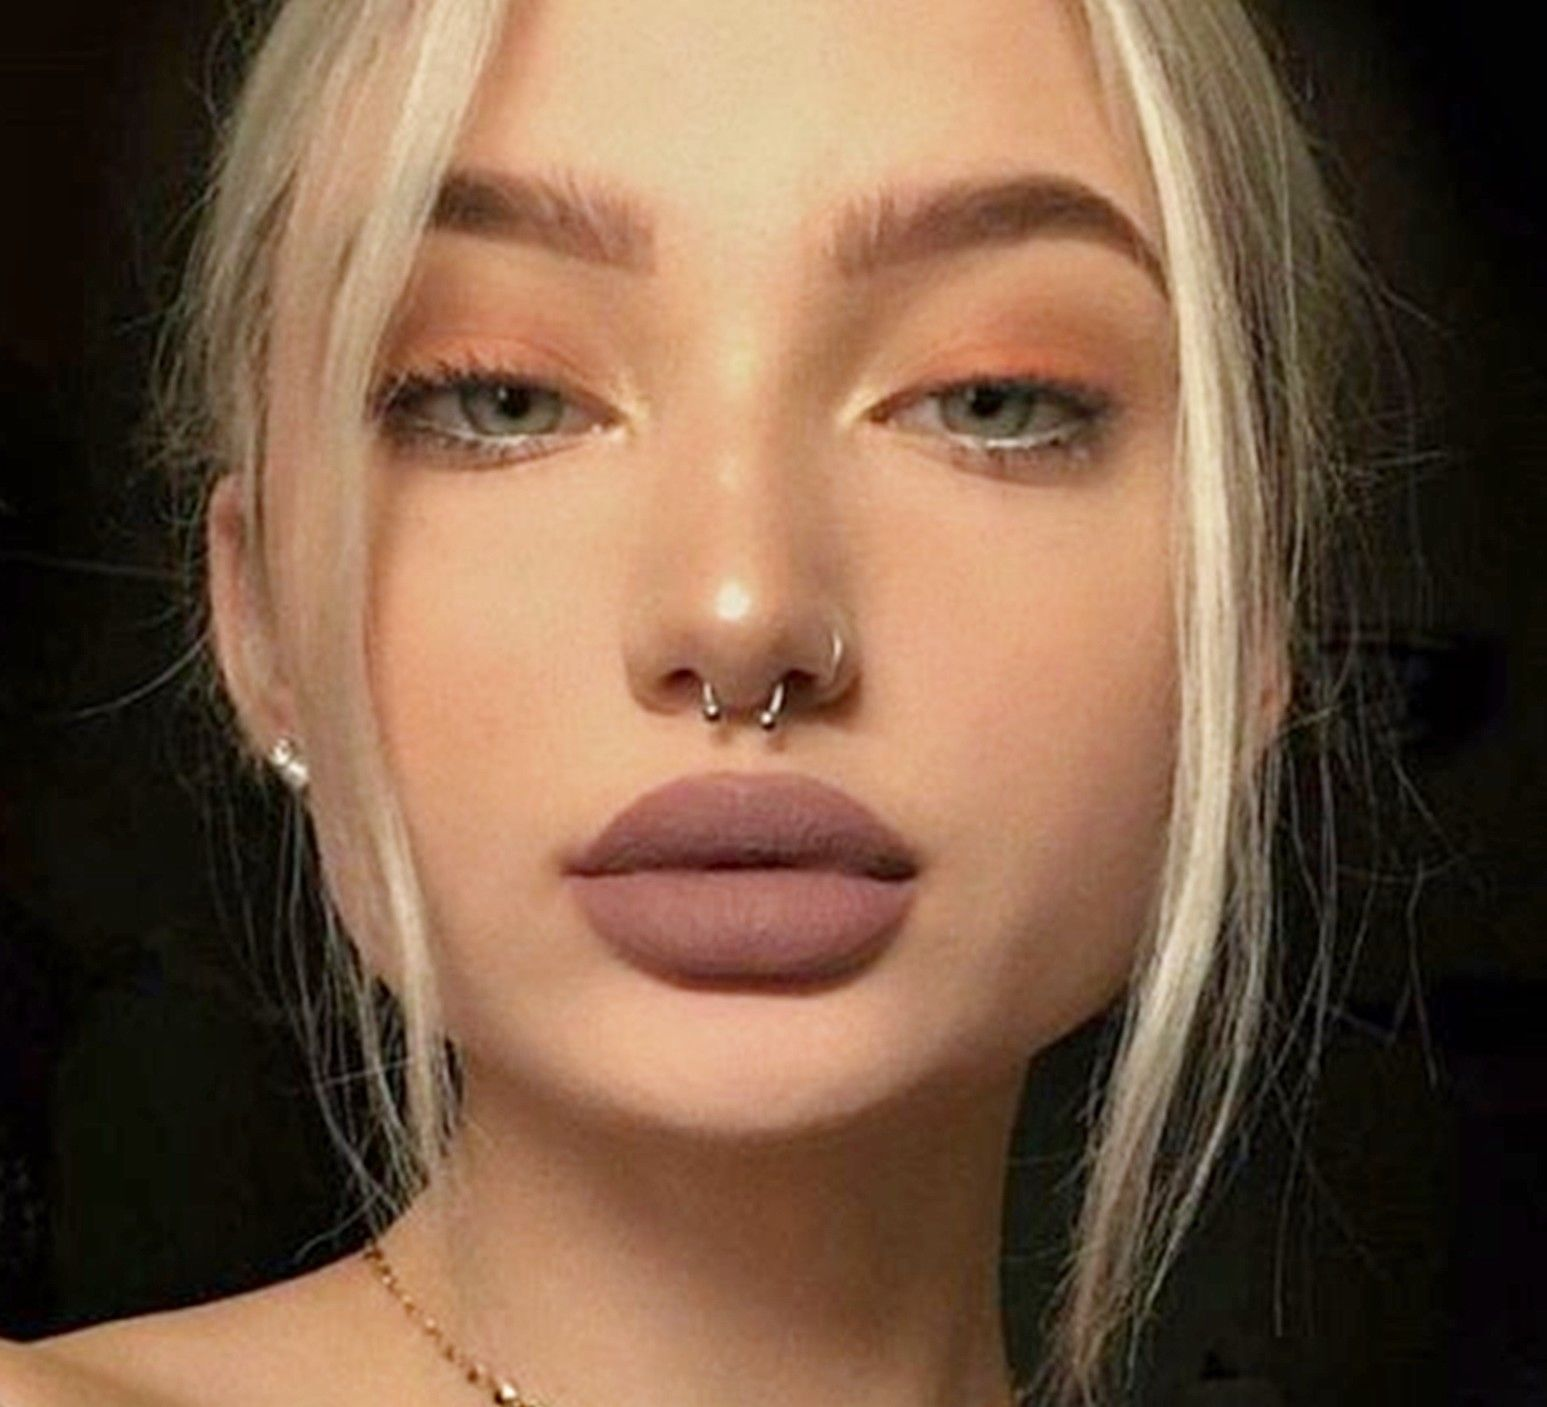 Piercing nose with ring  Silver Nose Ring Hoop Ear Septum mm Helix Cartilage Tragus Small